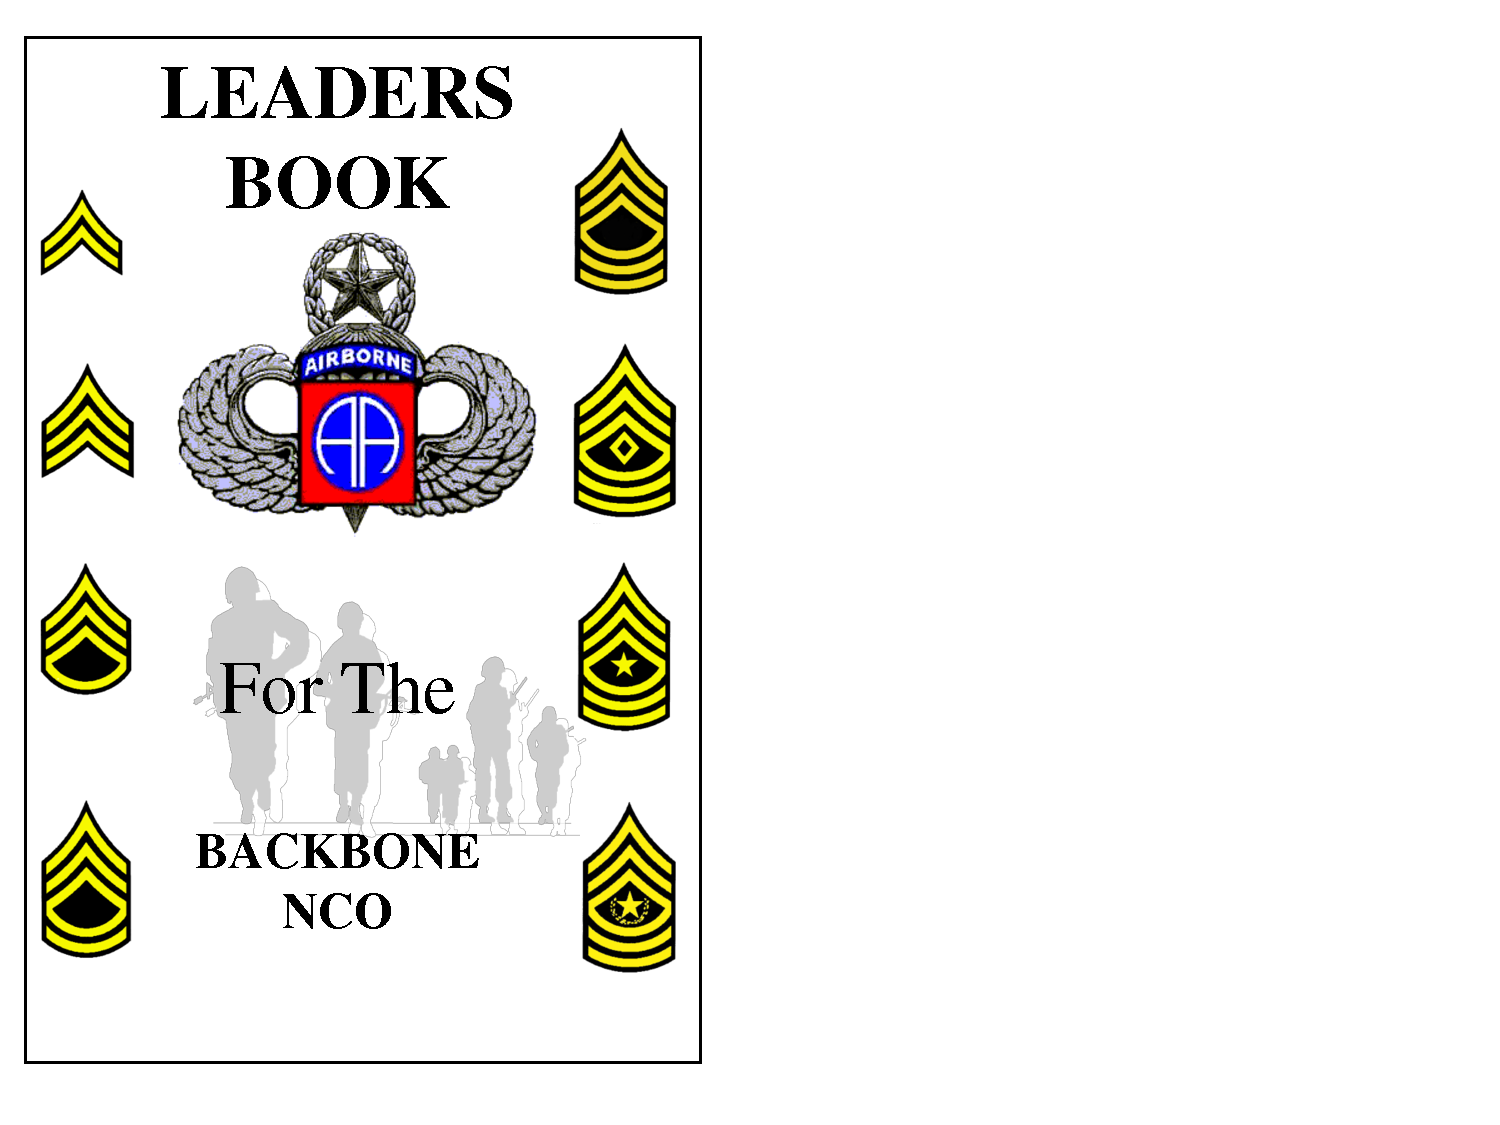 army leaders book template army nco leadership quotes quotesgram 20503